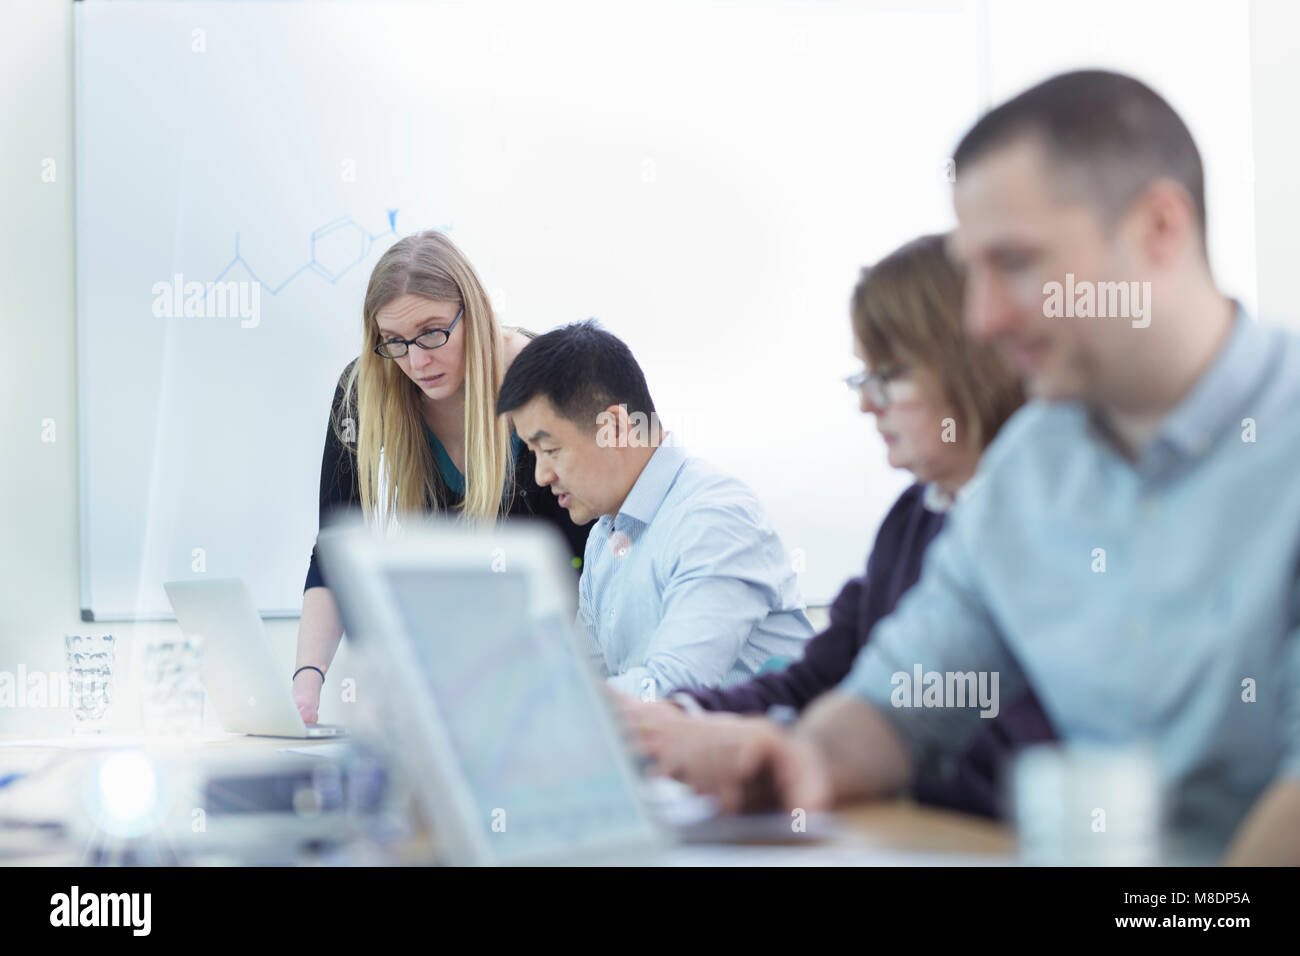 Younger and older scientists discussing pharmaceutical science project in meeting room - Stock Image